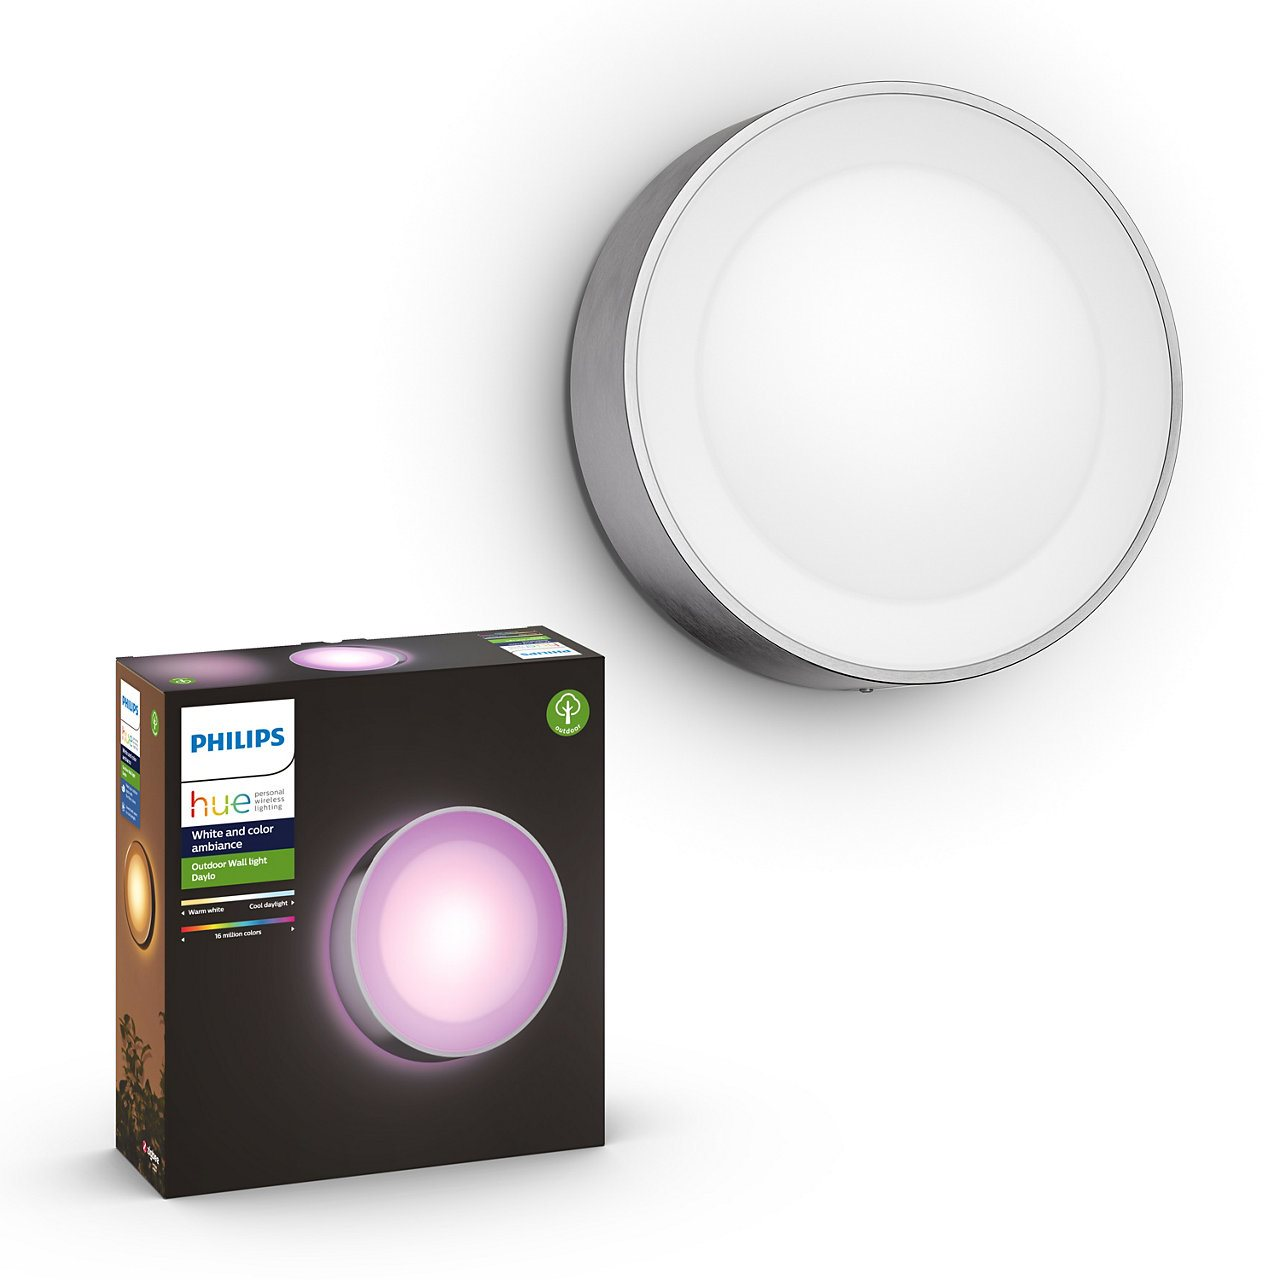 Philips Hue White and Color Ambiance Daylo 17465/47/P7